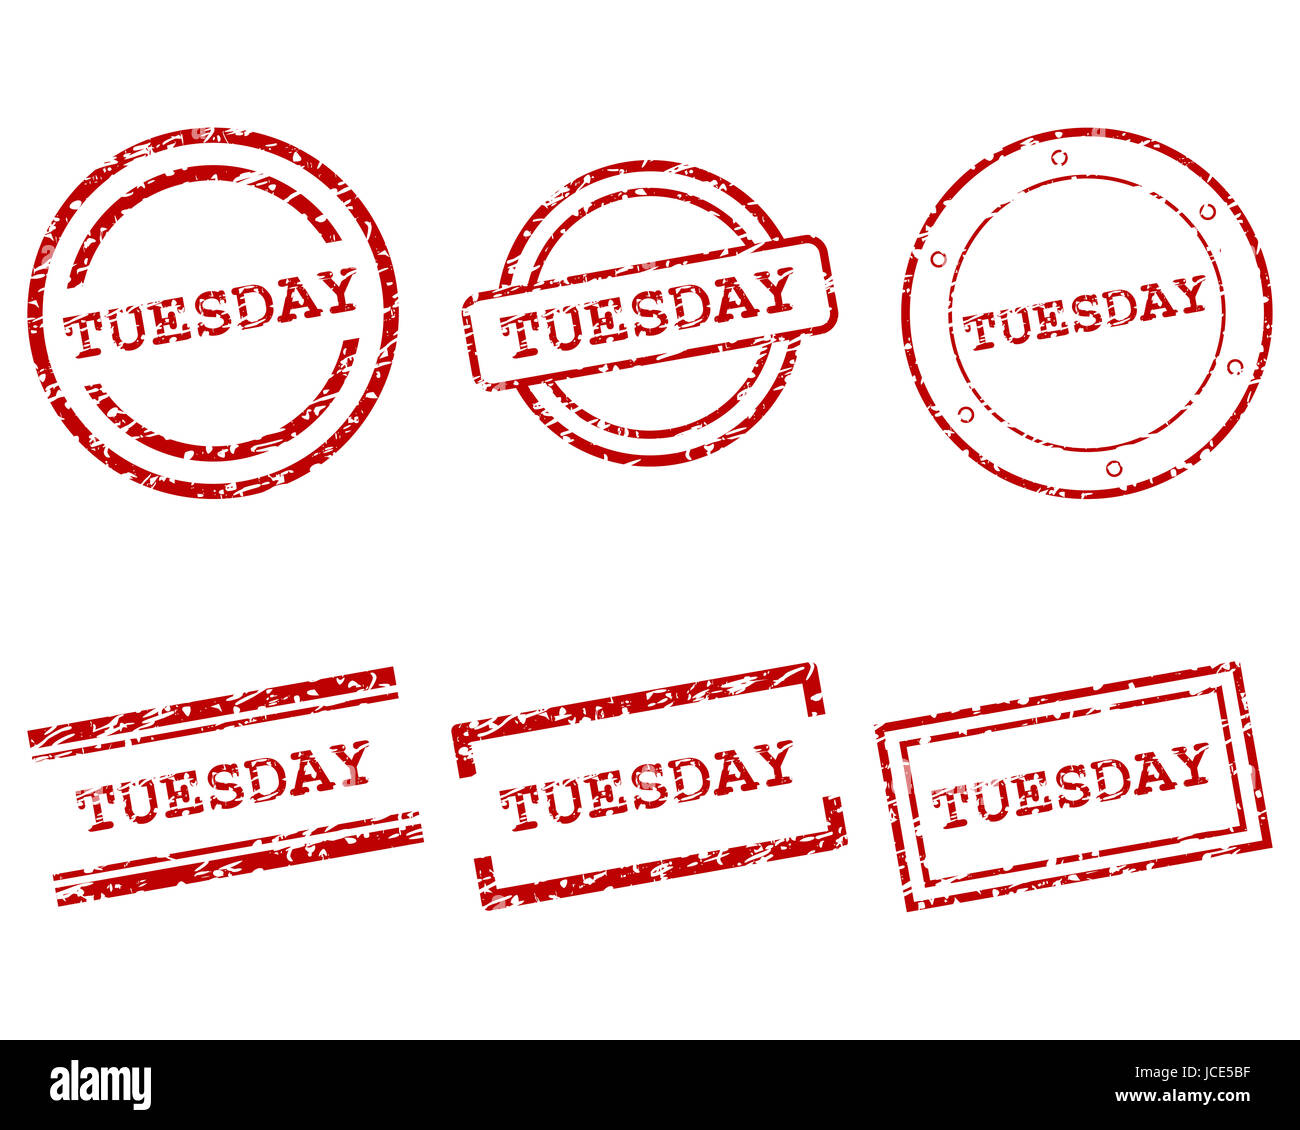 Tuesday Stempel - Stock Image